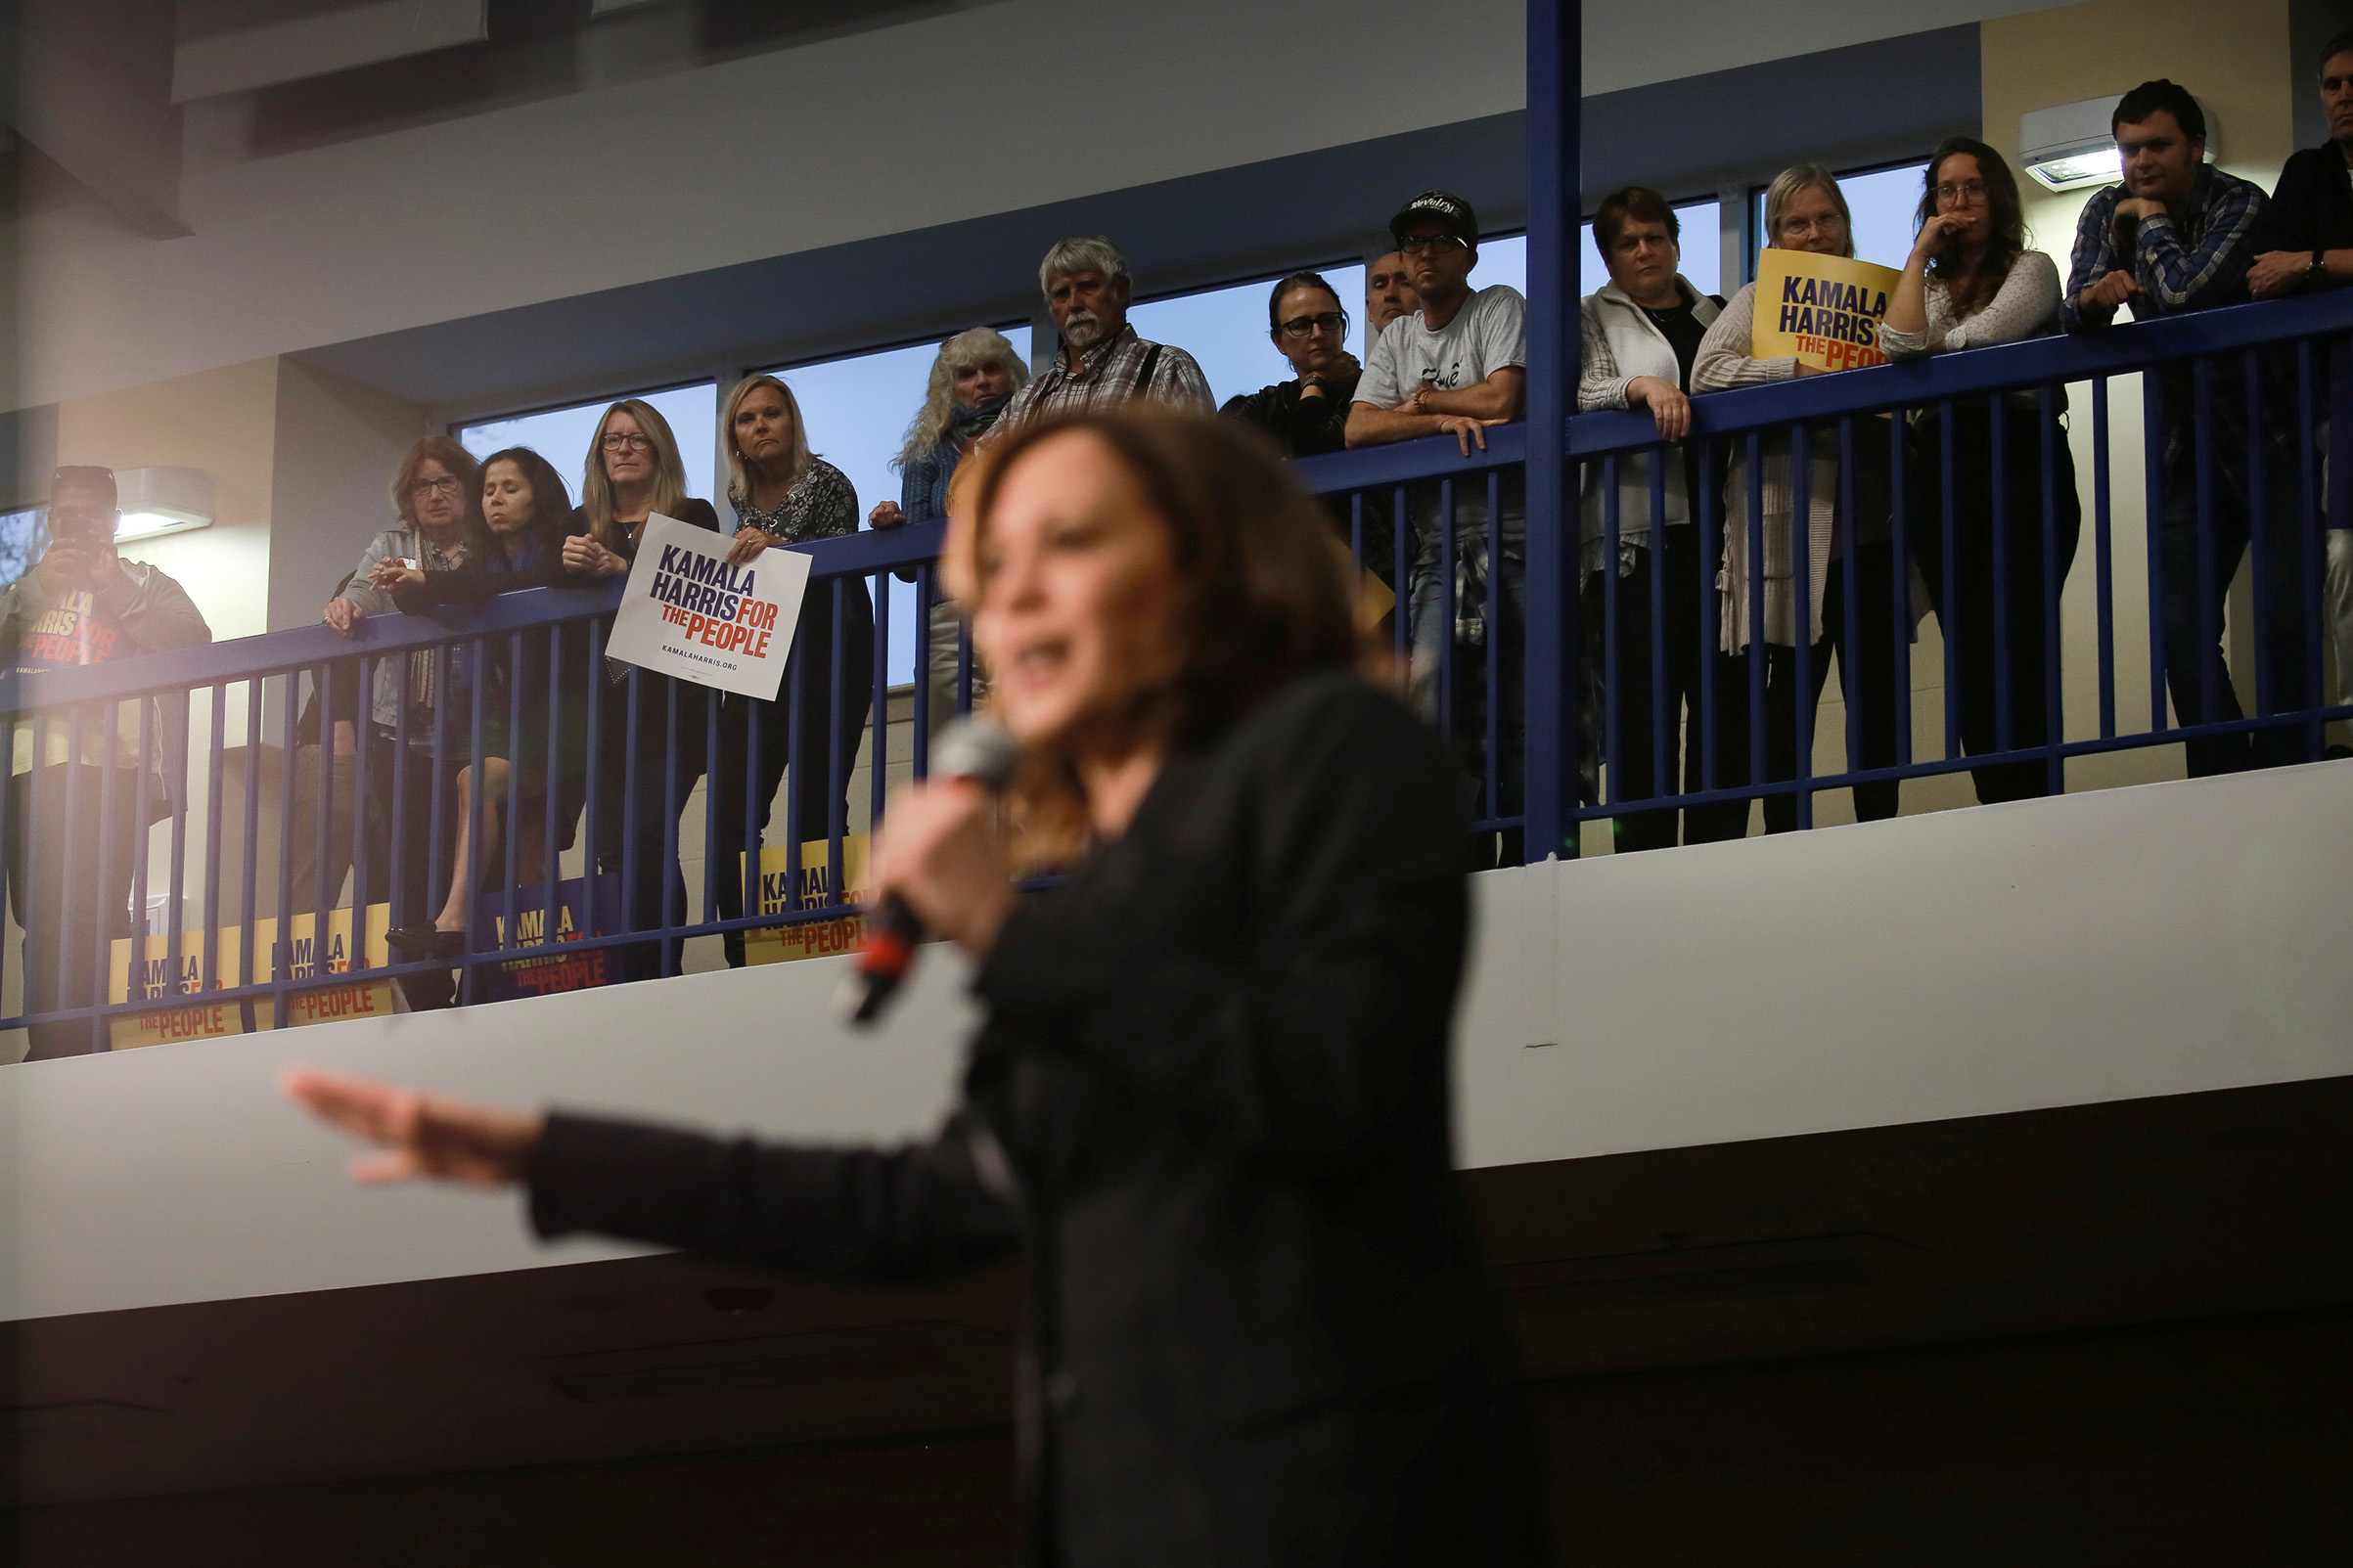 Sen. and Democratic presidential hopeful Kamala Harris campaigns at a town hall in North Charleston, S.C., on Feb. 15, 2019.